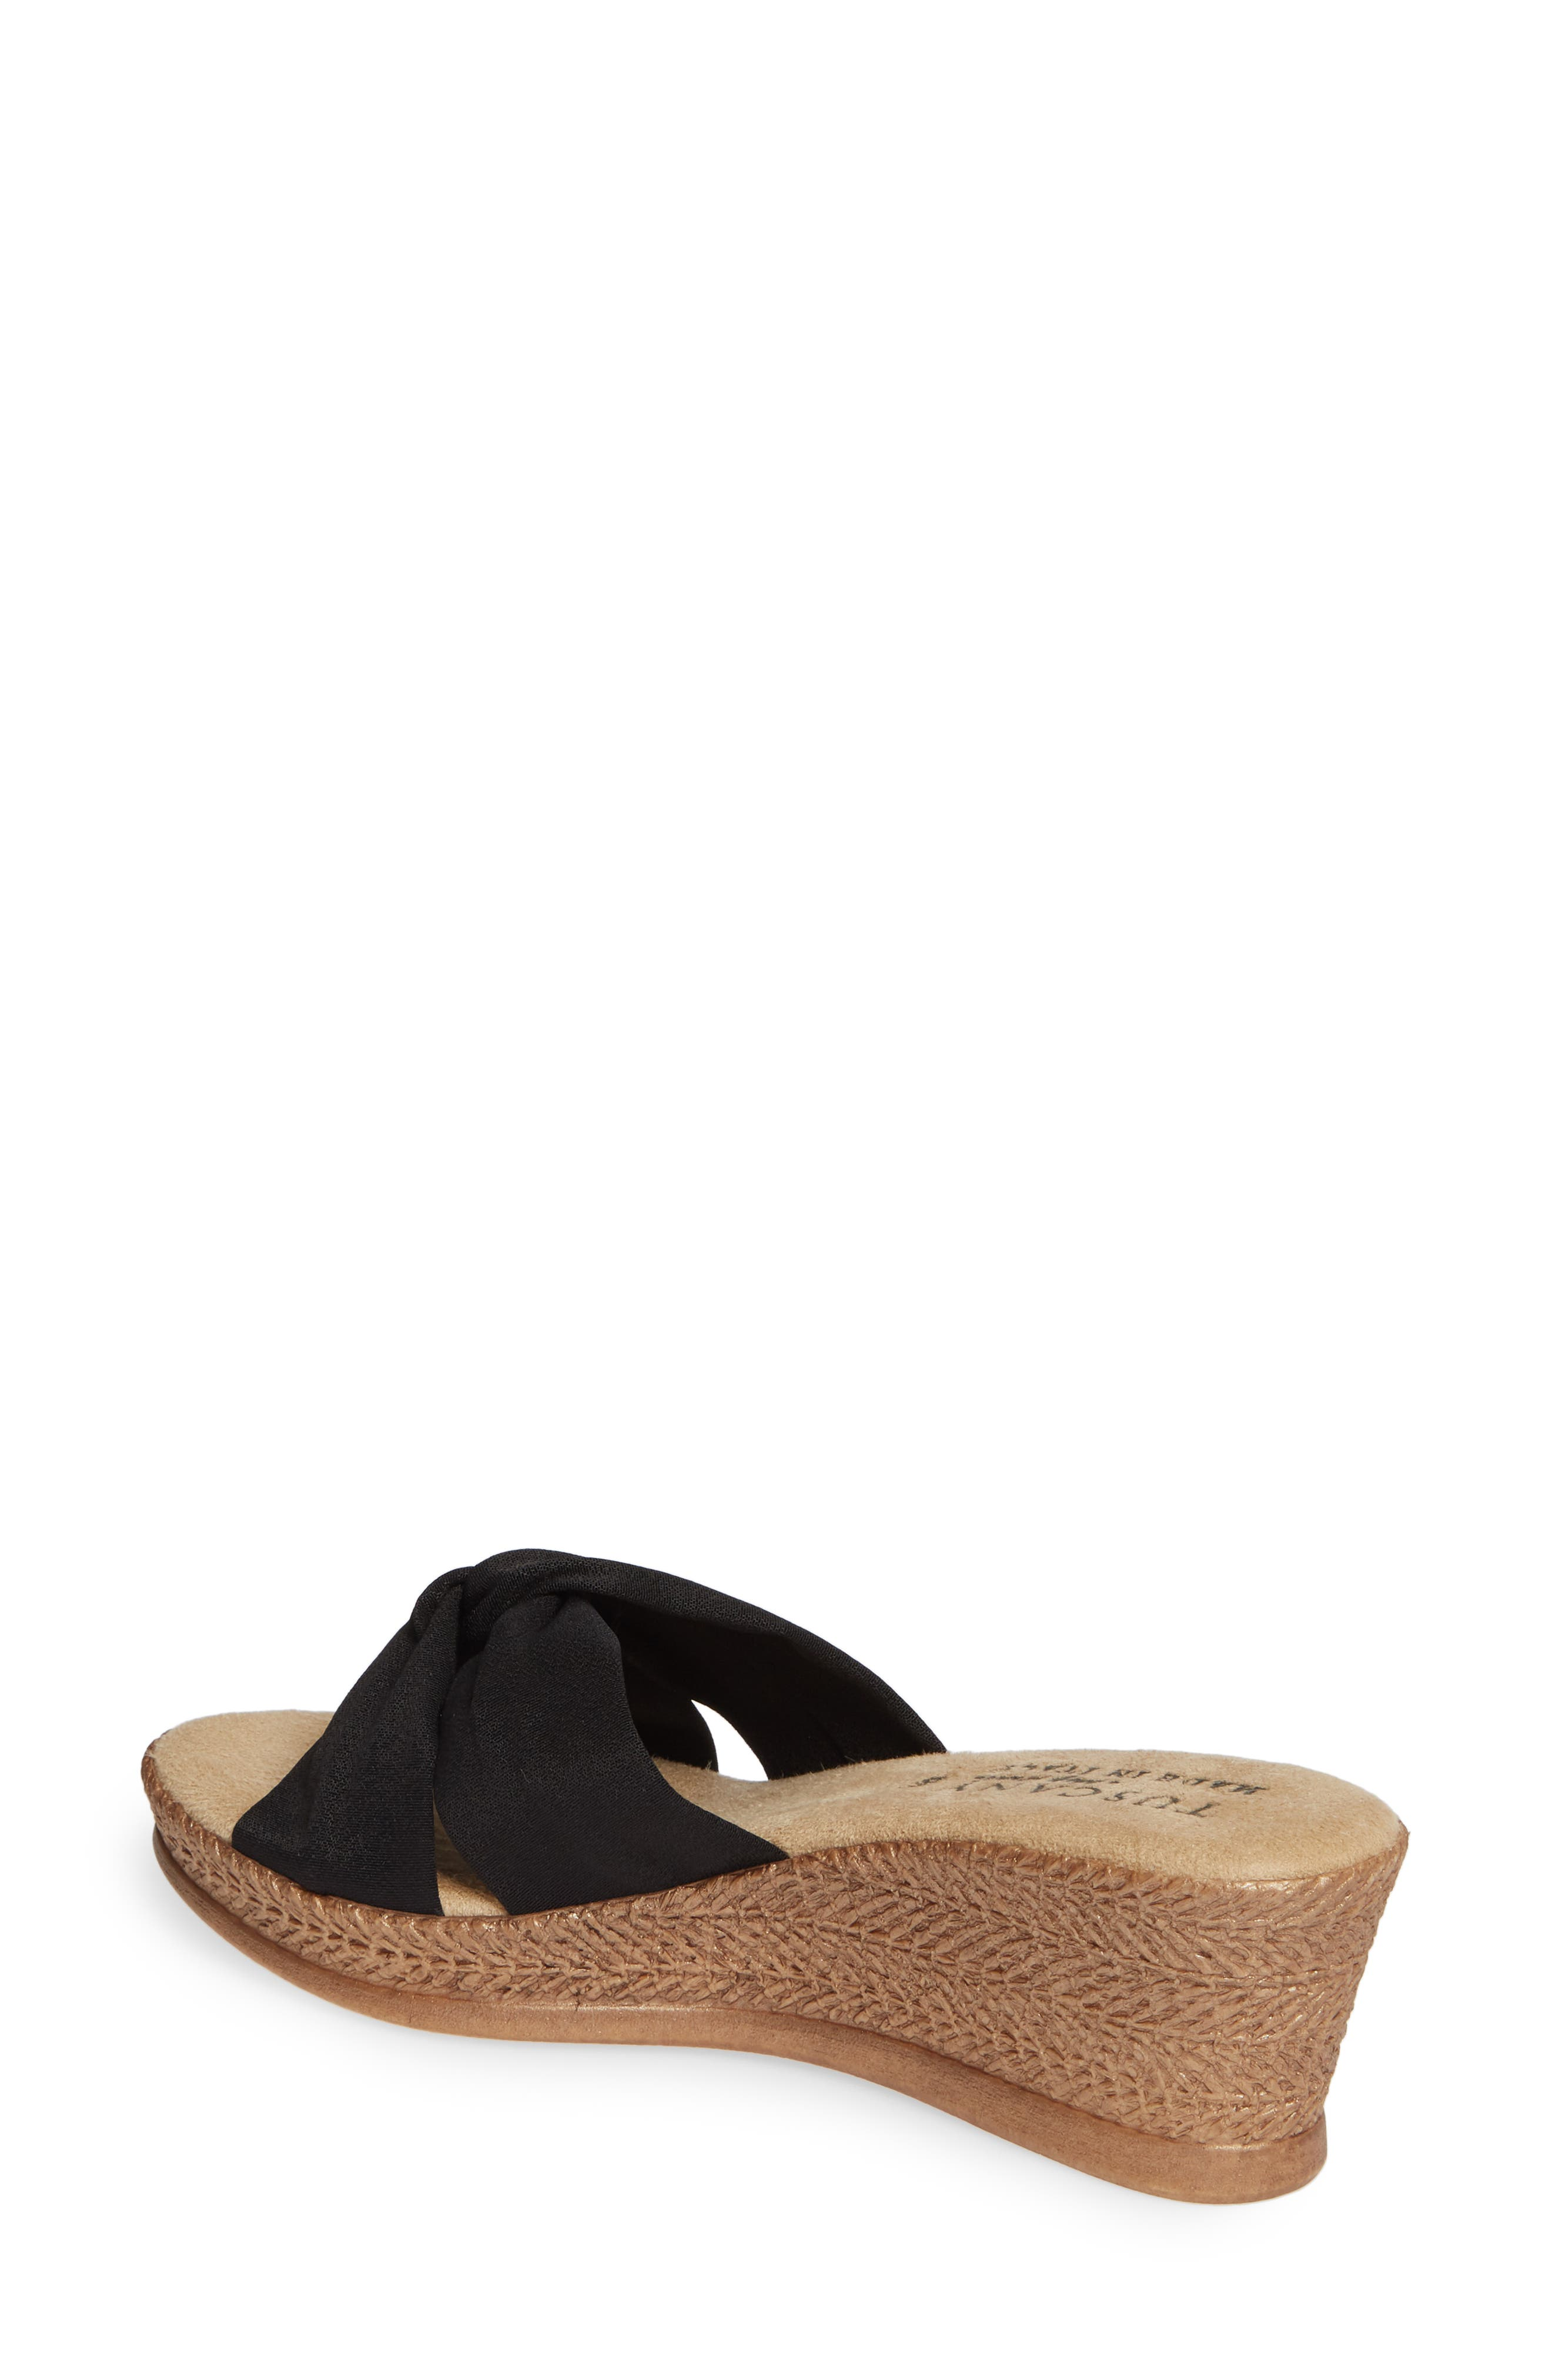 TUSCANY BY EASY STREET<SUP>®</SUP>, Dinah Platform Wedge Sandal, Alternate thumbnail 2, color, BLACK FABRIC